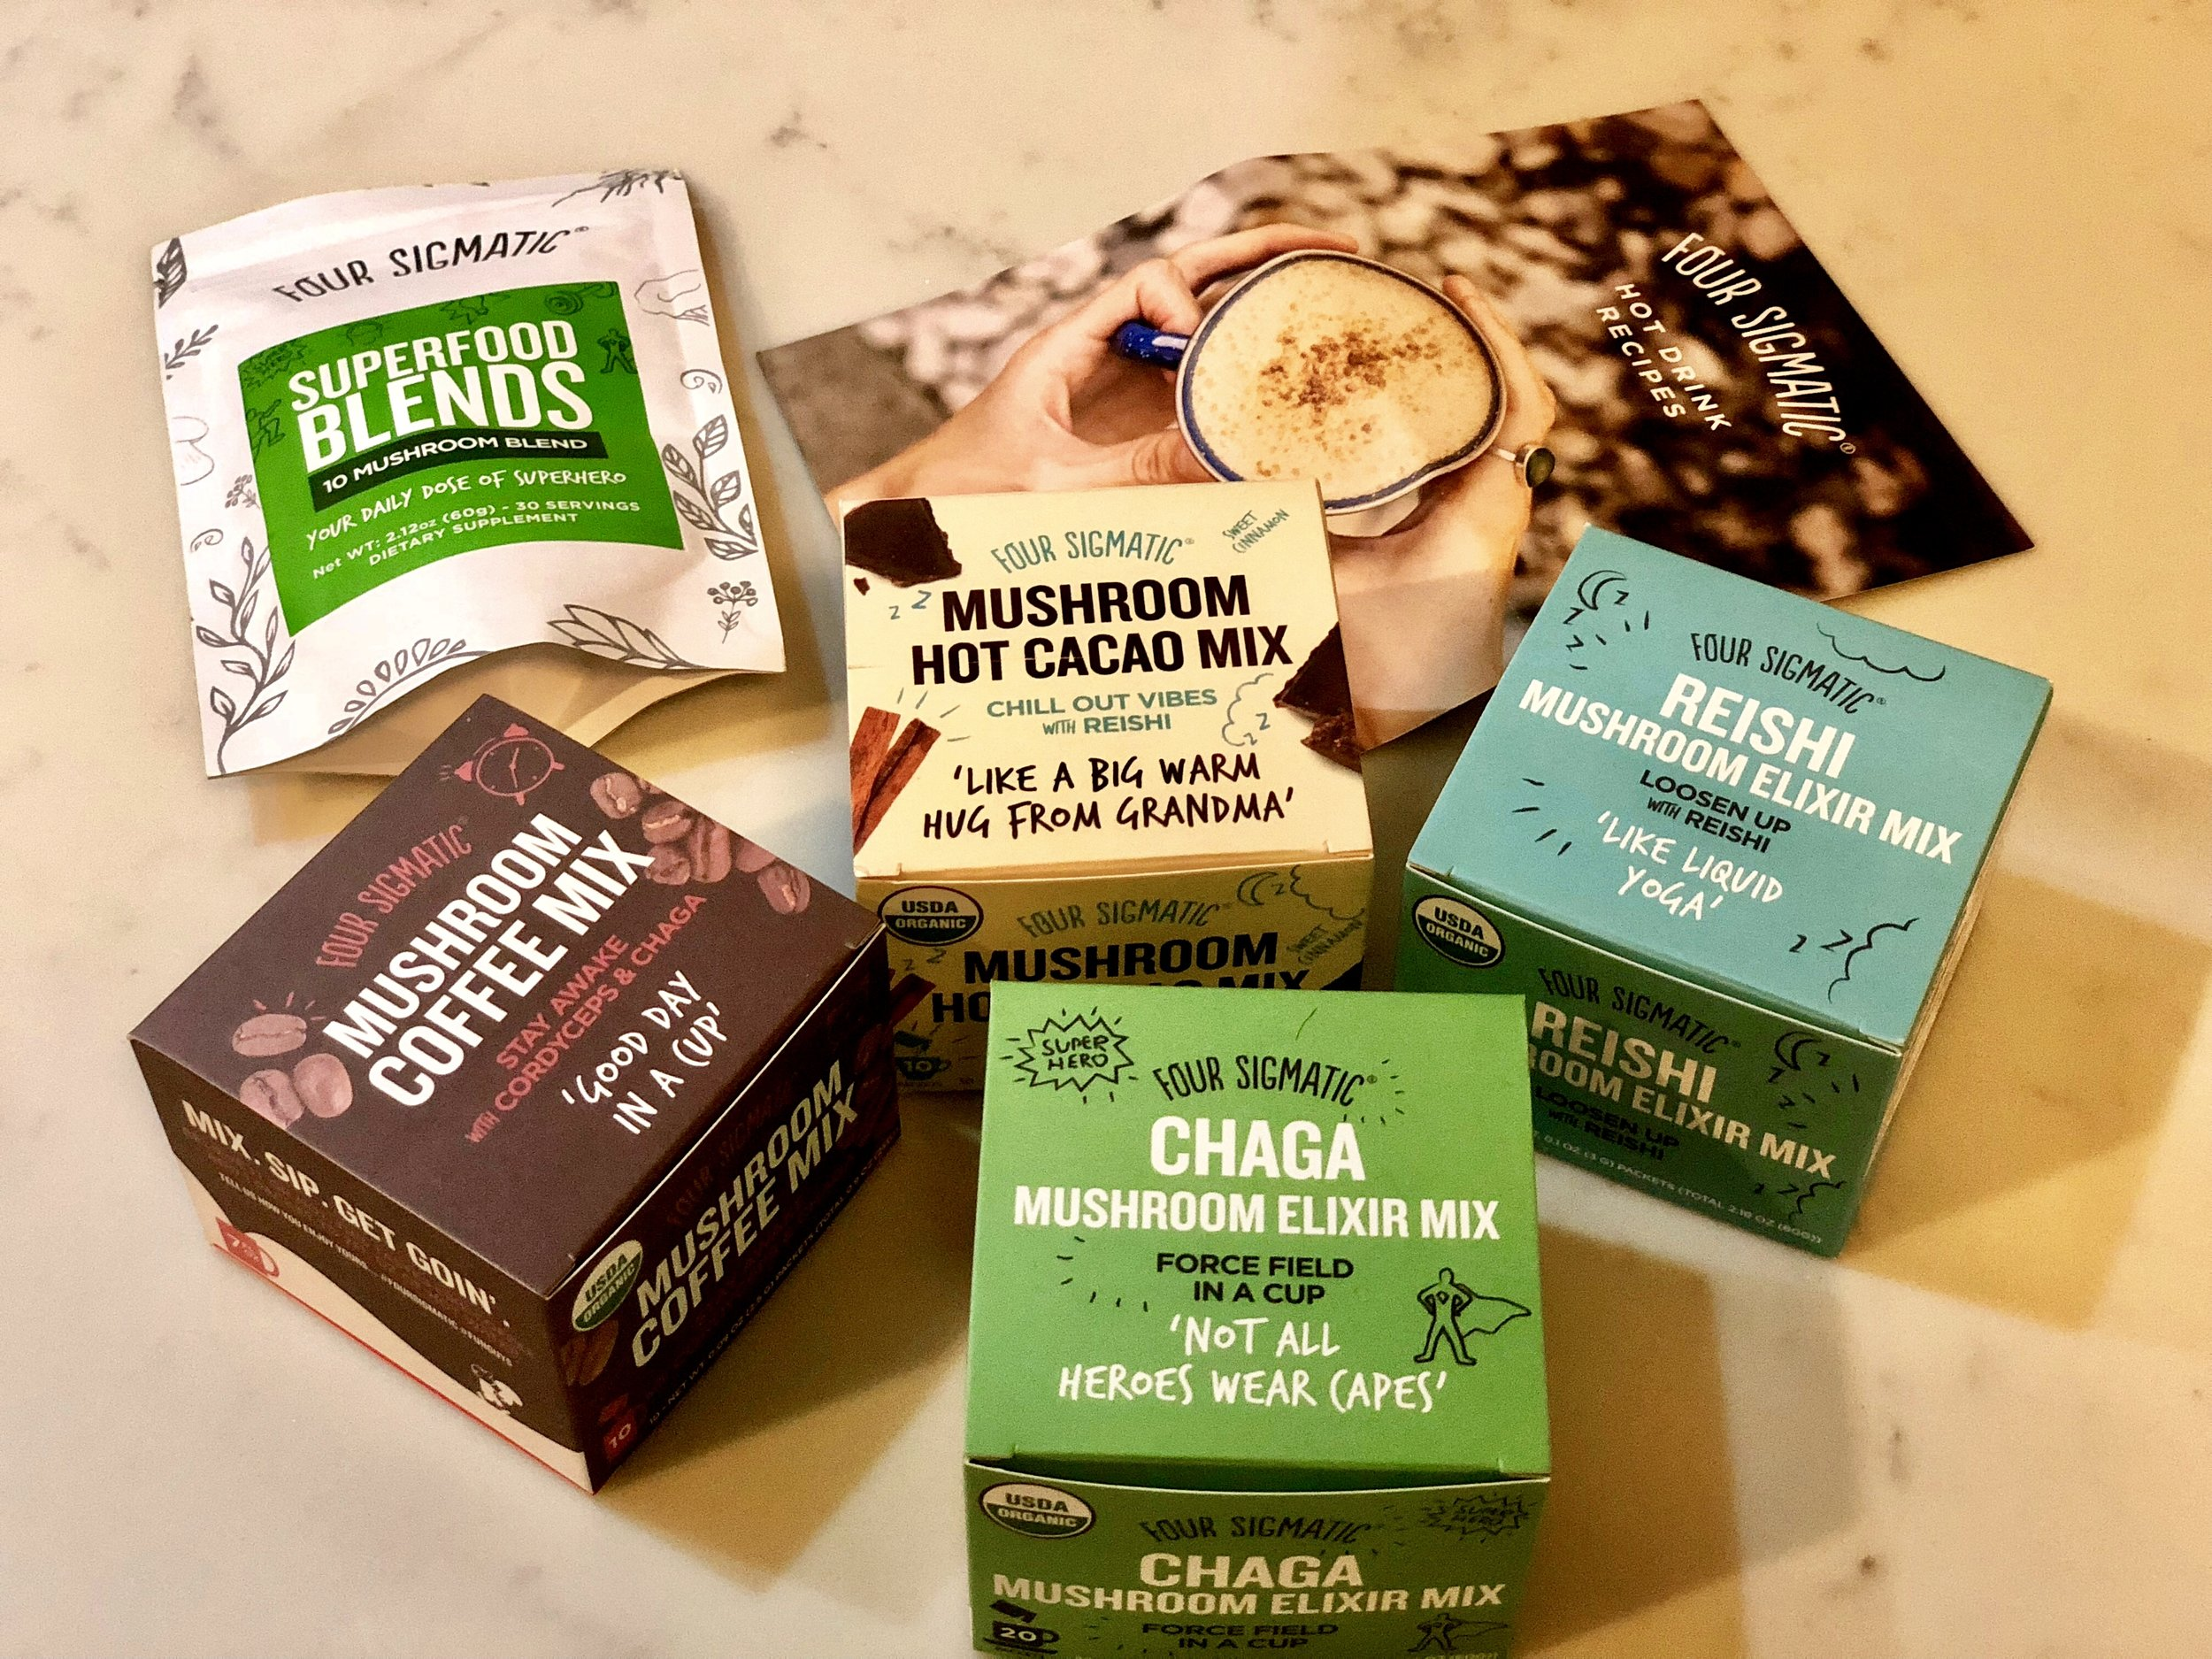 foursigmatic-products.jpg